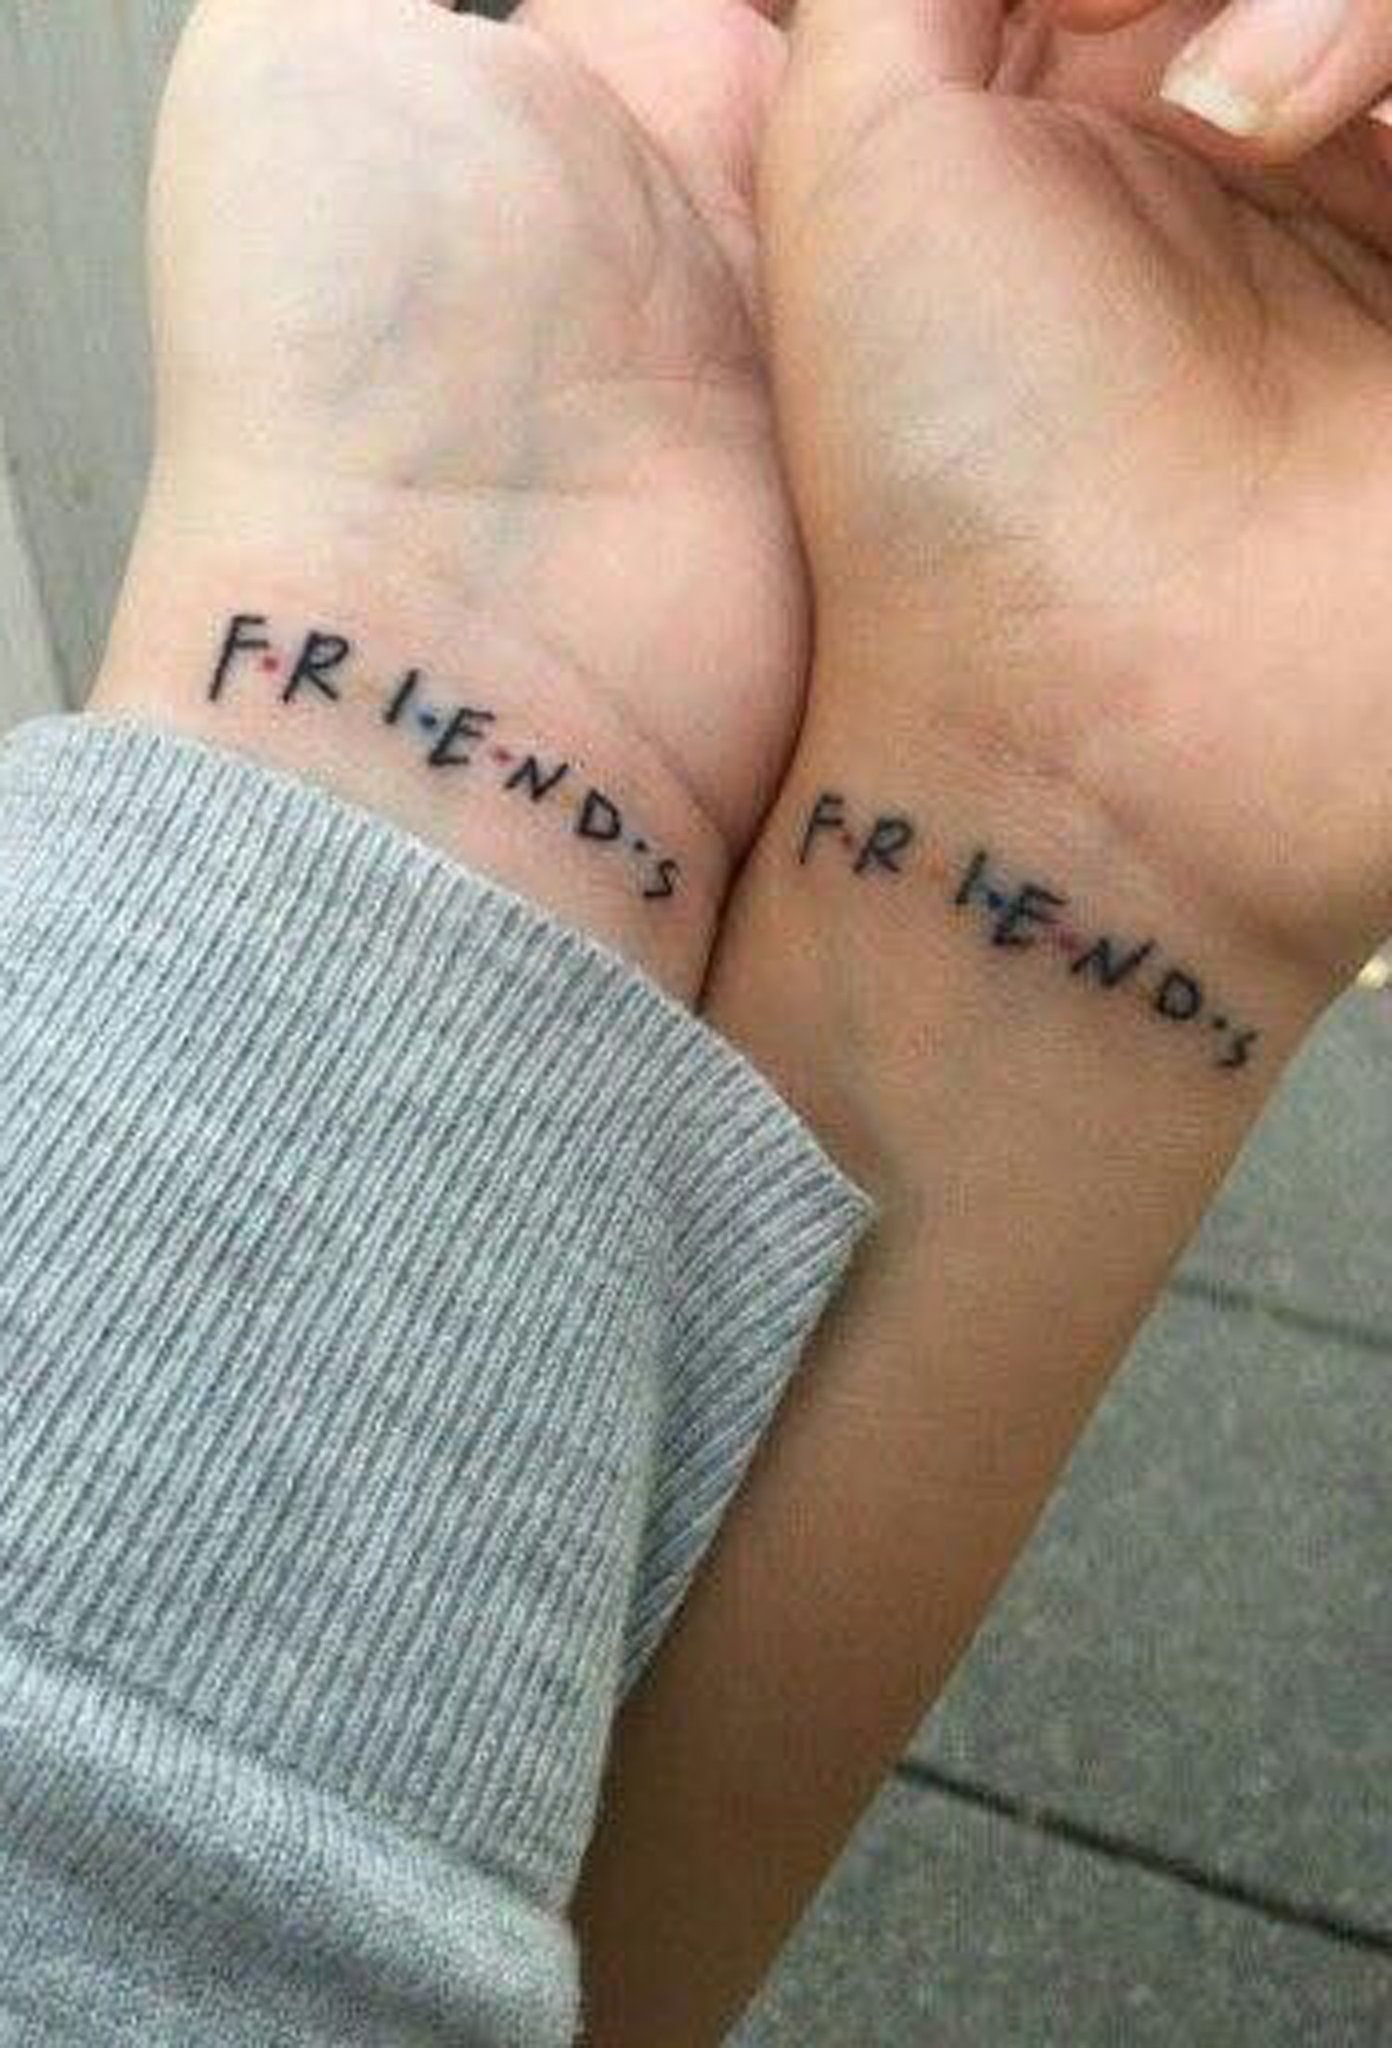 Good ankle tattoo ideas  of the best matching tattoos to get with your most favourite